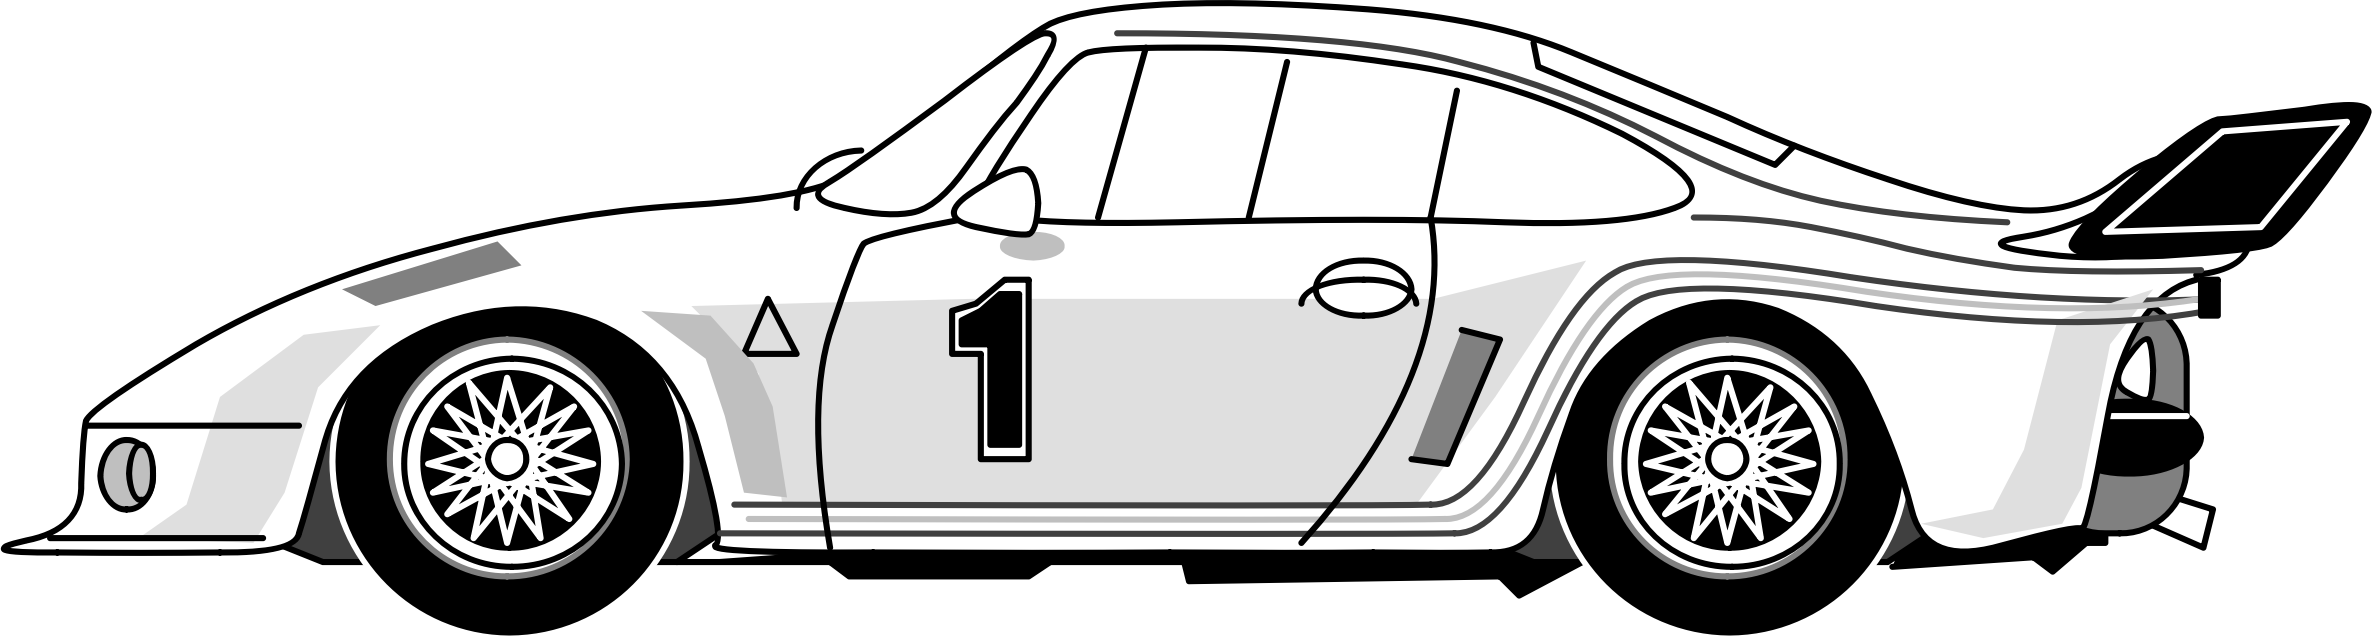 911 drawing artwork. Porsche icons png free